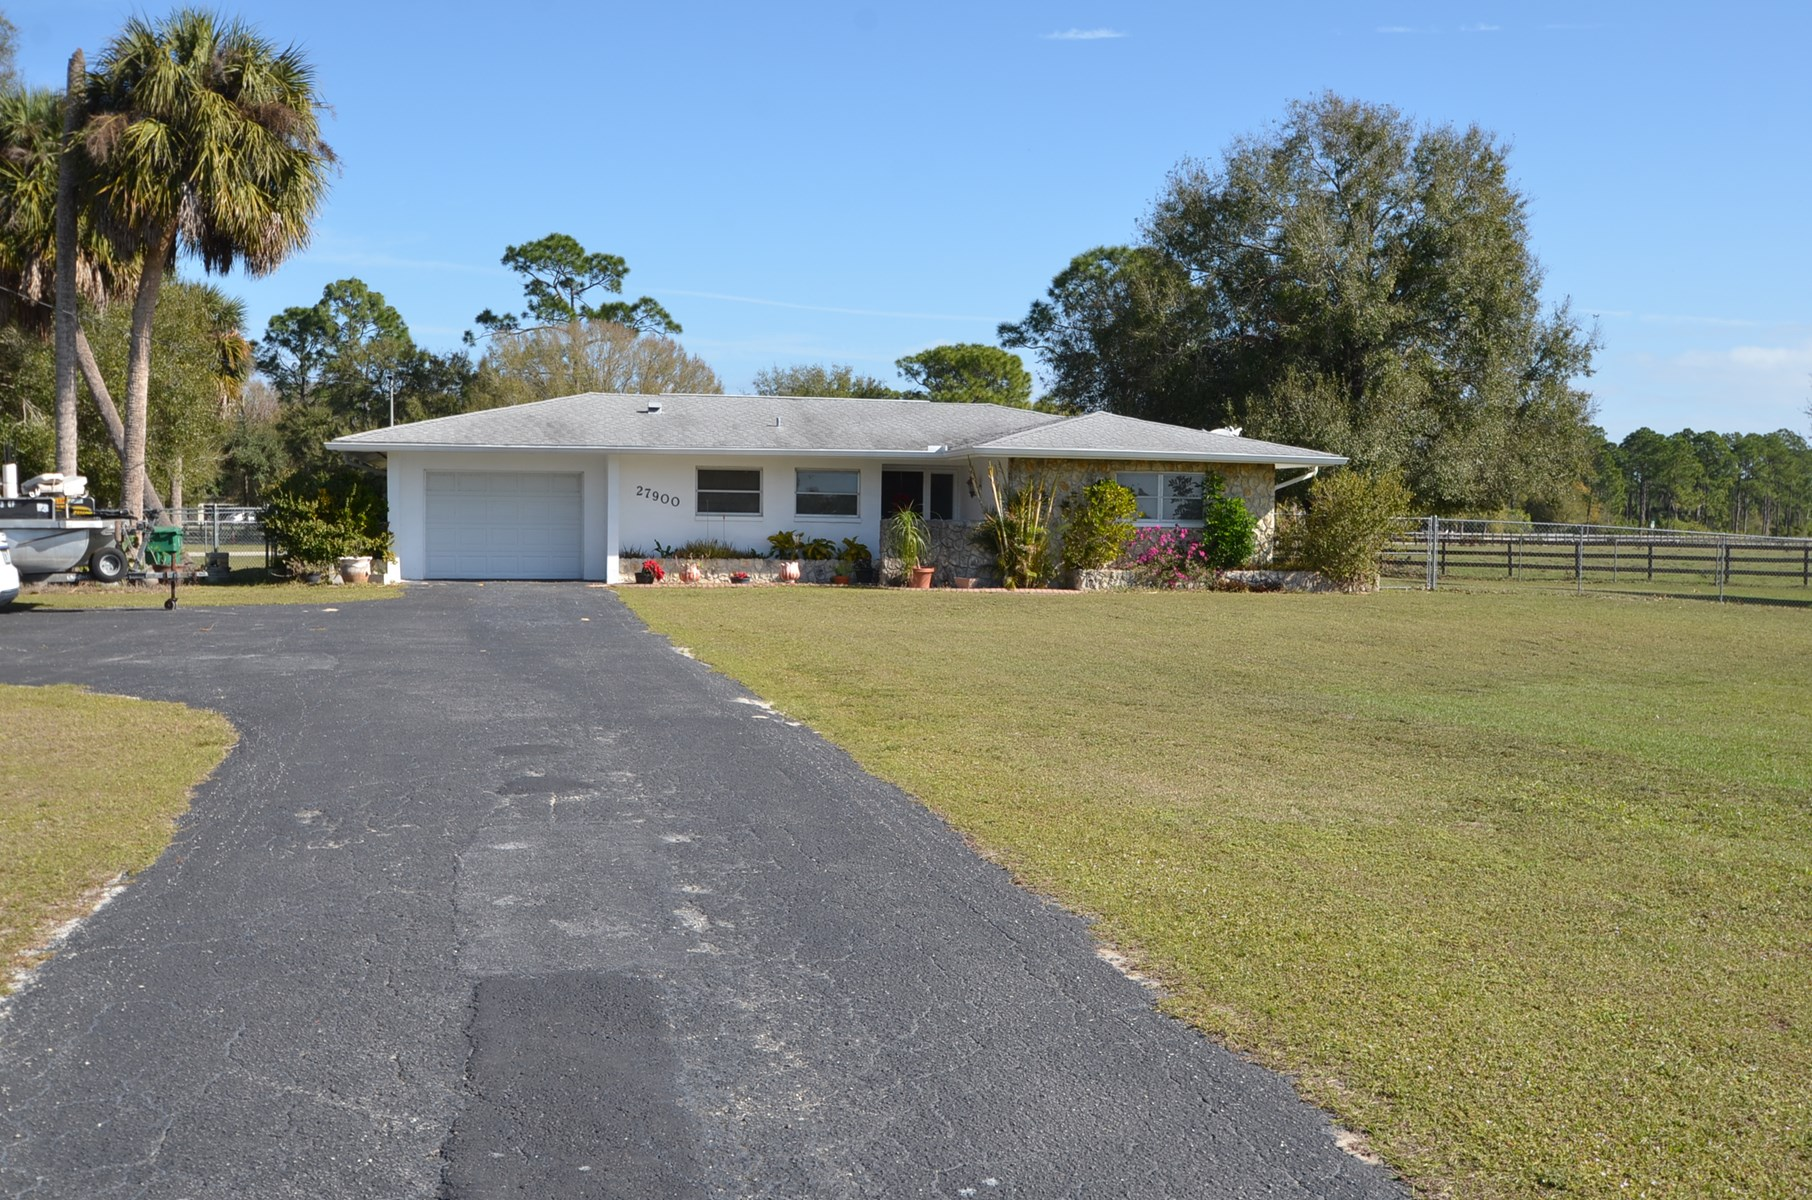 HOME ON 3.86 ACRES IN PUNTA GORDA, FL!